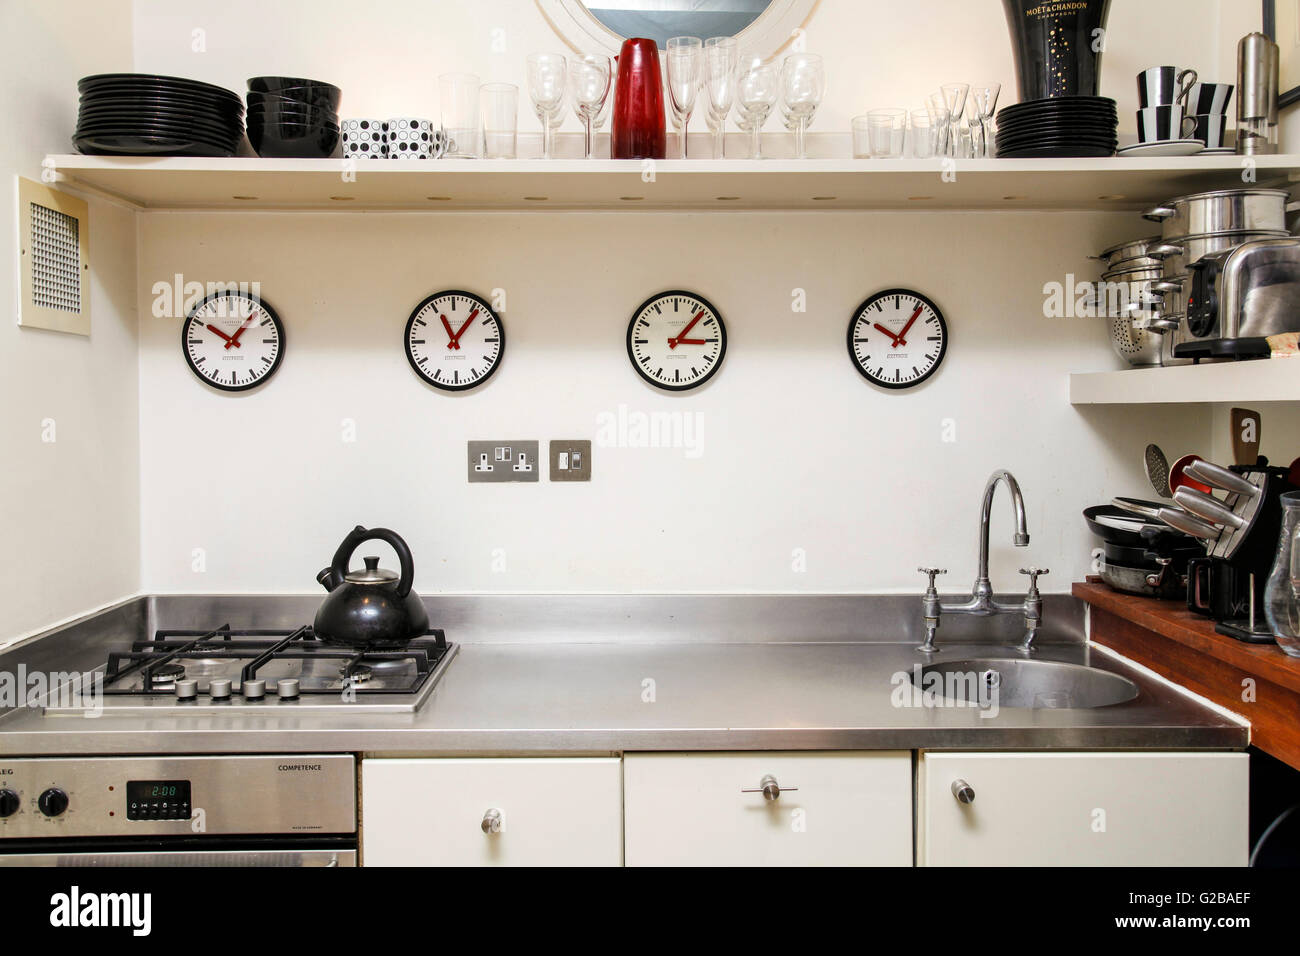 Foley House, Maddox Street. Small modern kitchen with ...